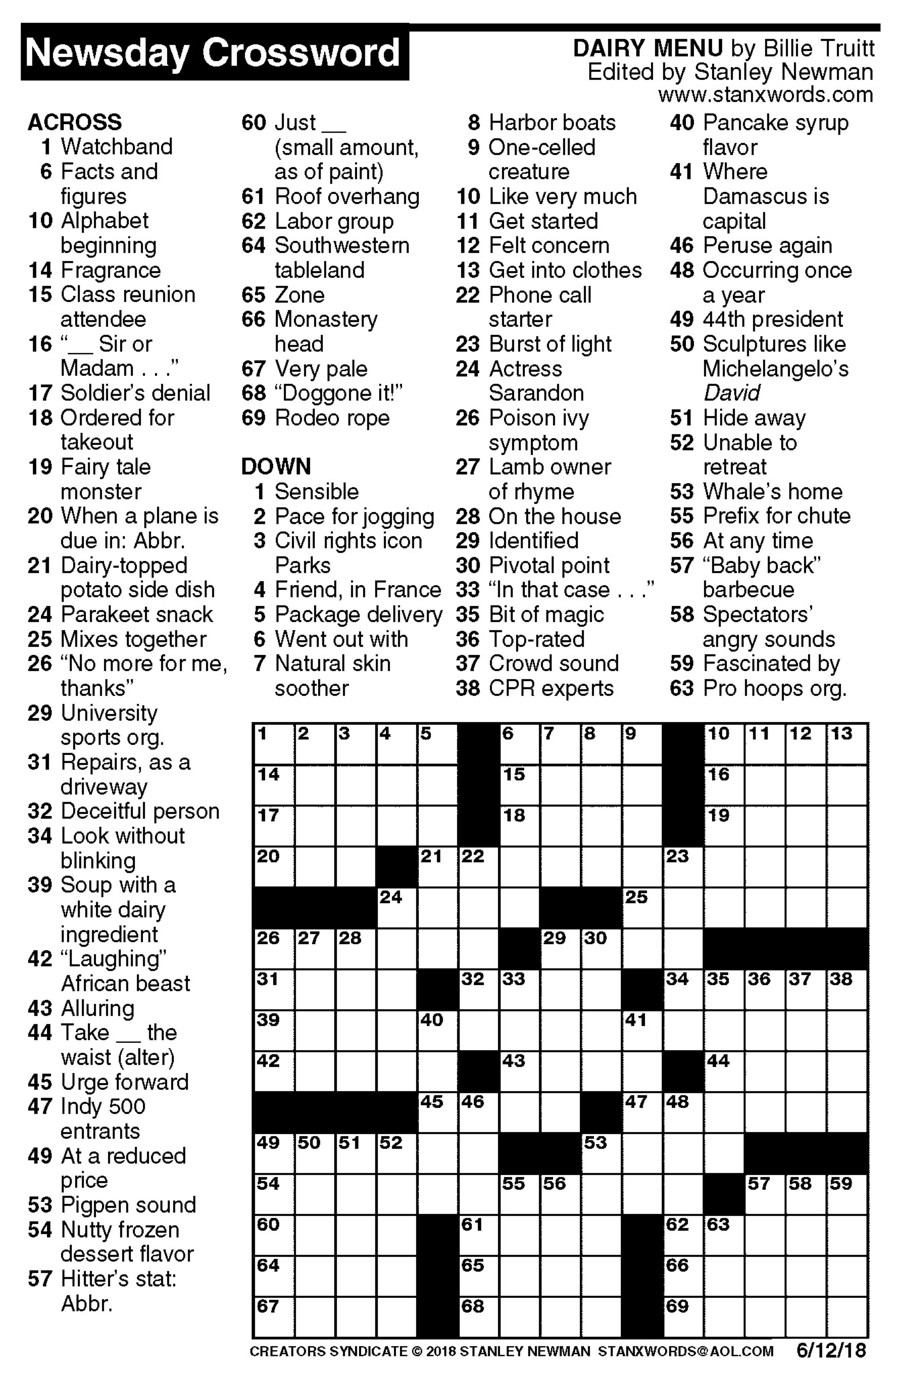 Newsday Crossword Puzzle For Jun 12, 2018,stanley Newman - Printable Crossword Newsday